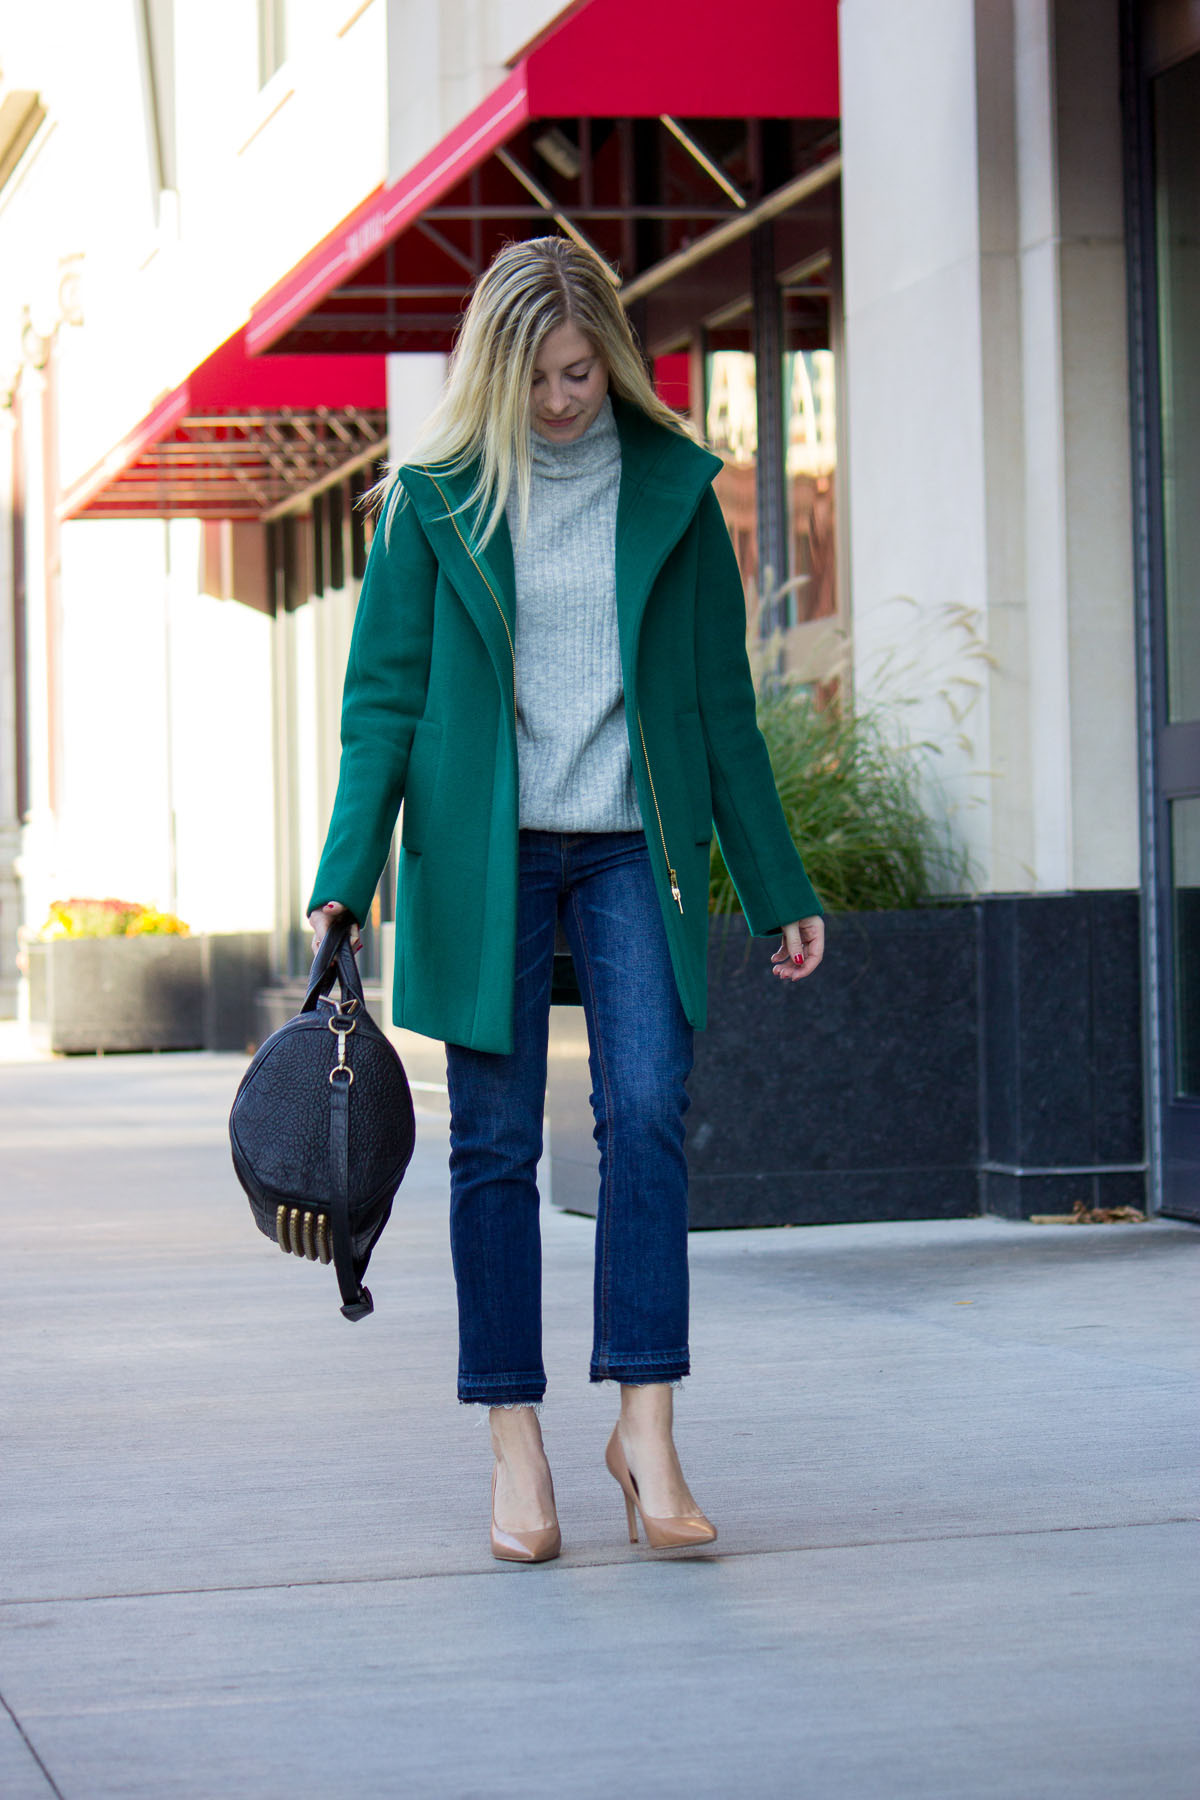 j-crew-green-winter-coat-3